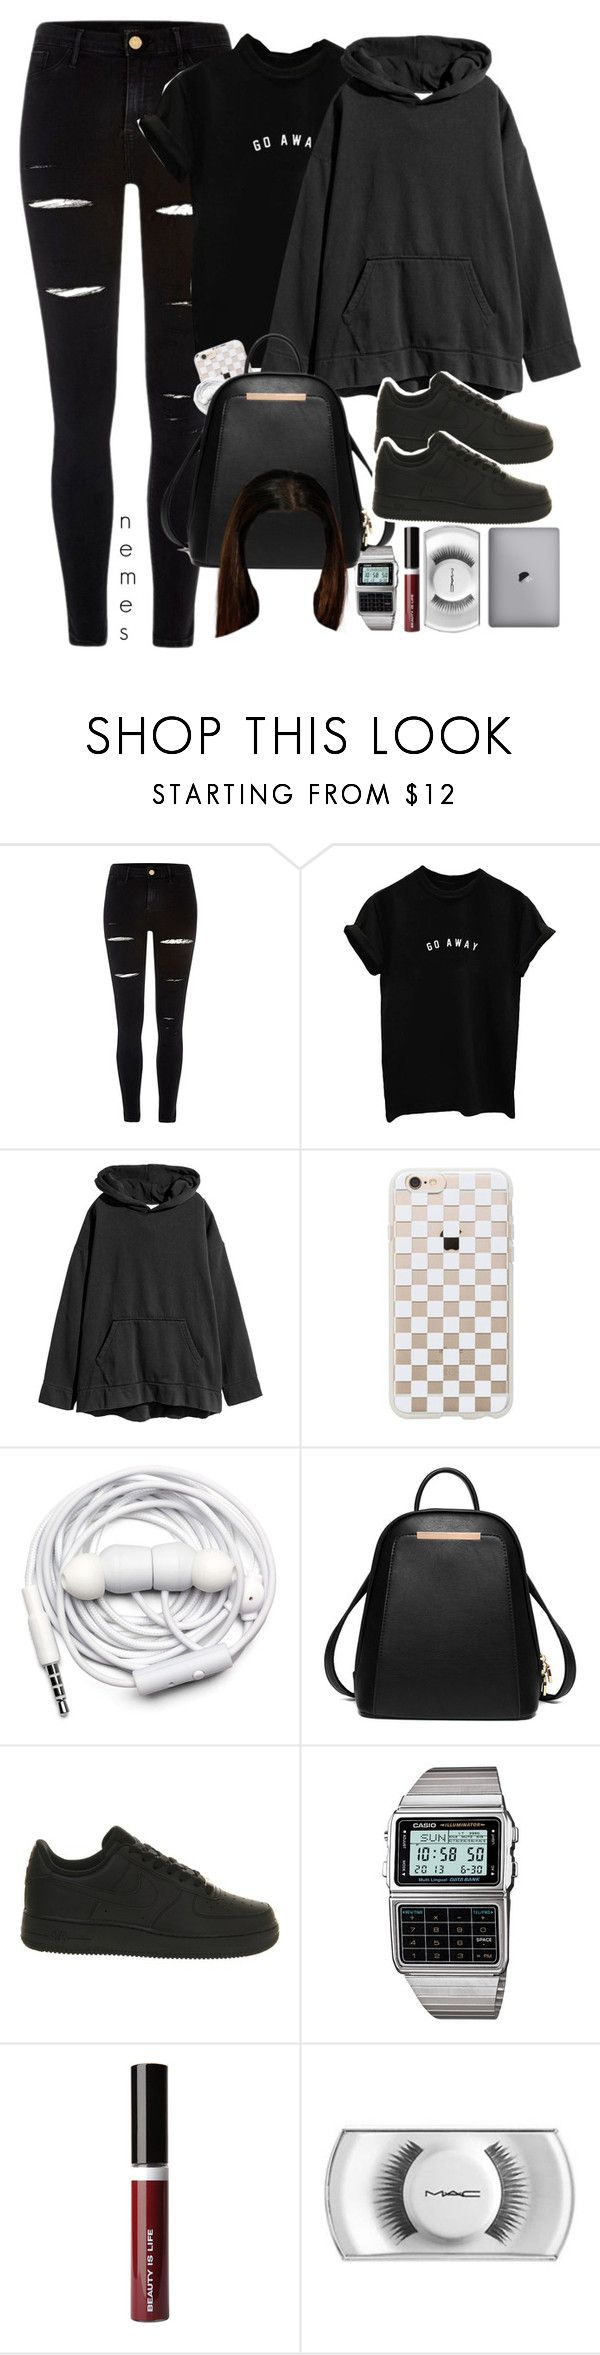 """Mr. Robot (series)"" by nemes-margareta-anna ❤ liked on Polyvore featuring River Island, Rifle Paper Co, Urbanears, NIKE, Casio, Beauty Is Life and MAC Cosmetics"